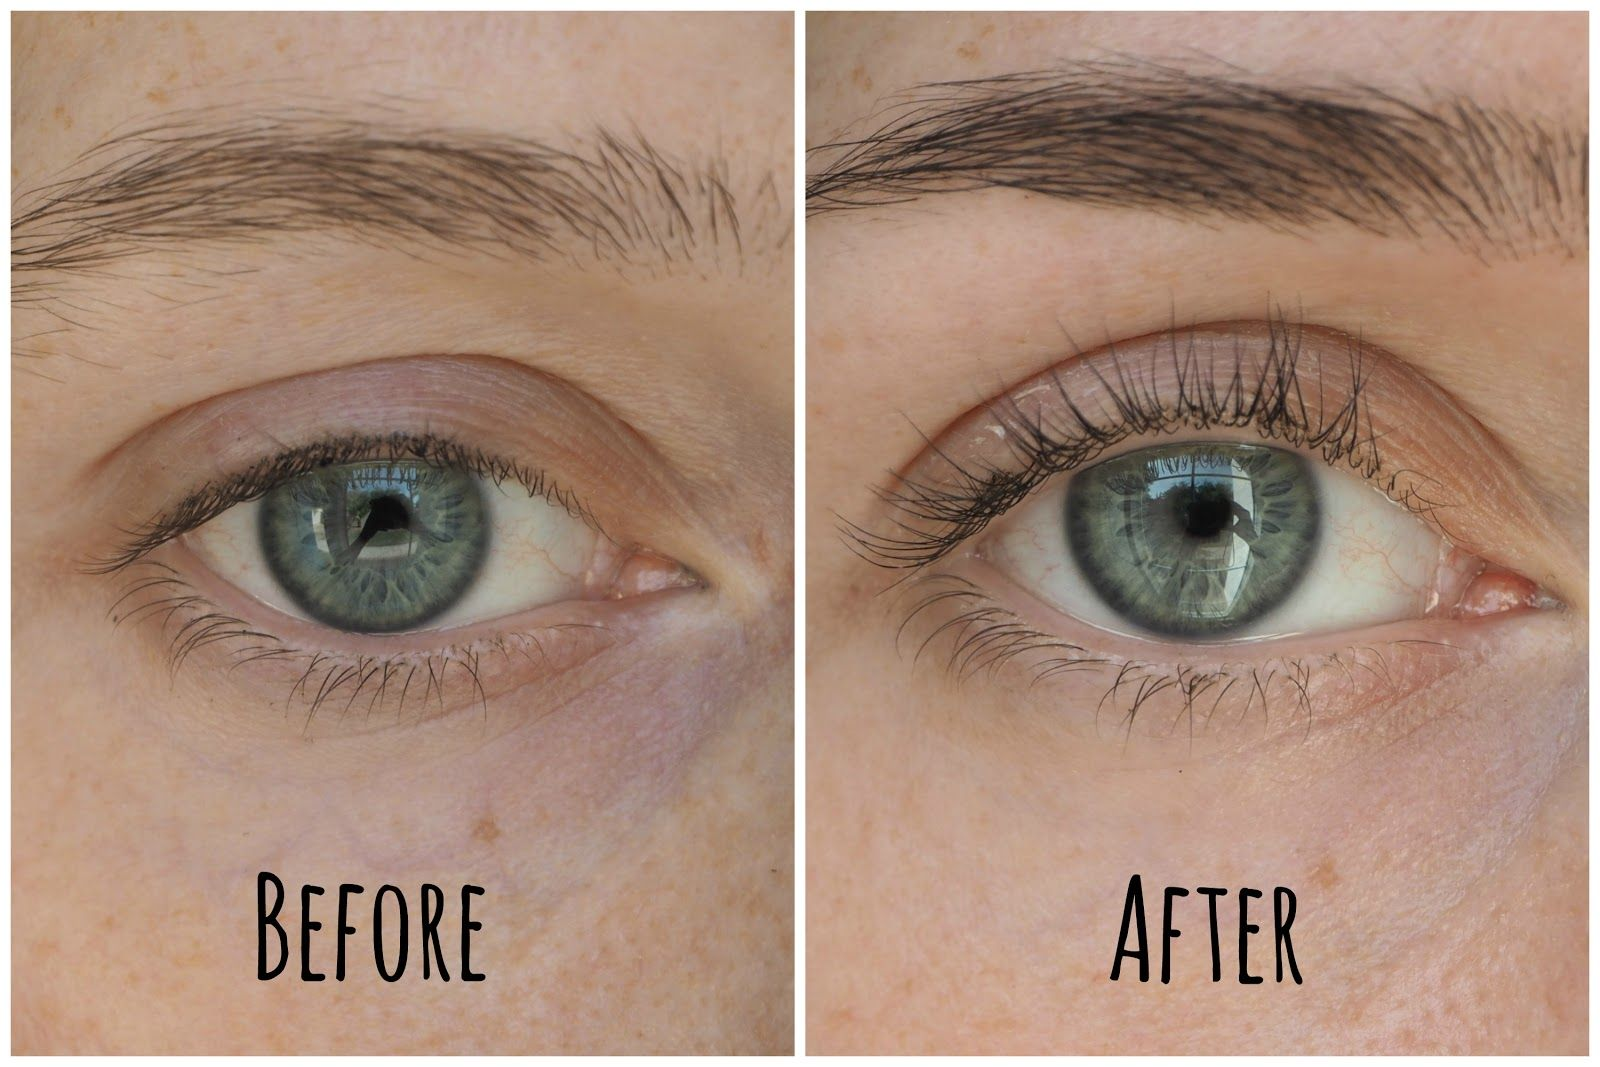 8f35bf376e3 LVL Lash Lift Review - Before and After Photos, Life in Excess Blog, LVL  Lashes Dubai